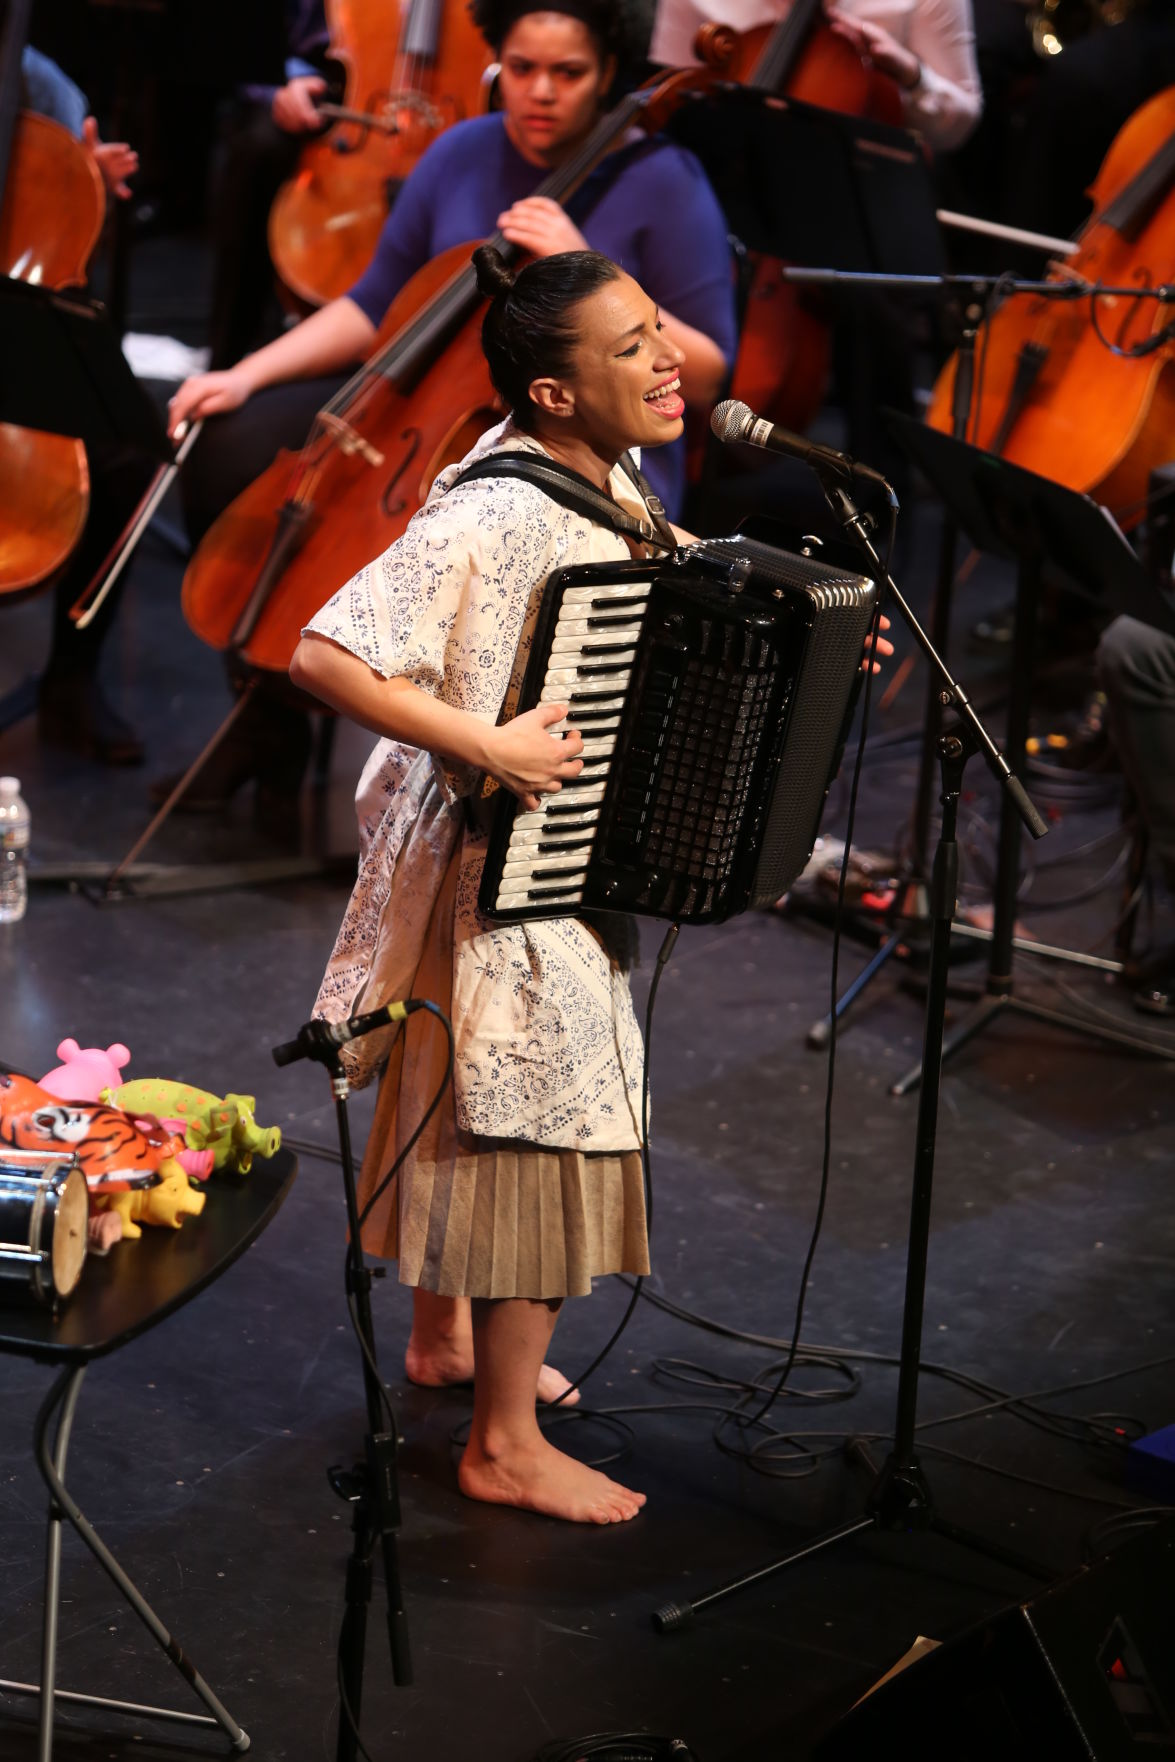 Concert review - In Banda Magda's world, the answer is